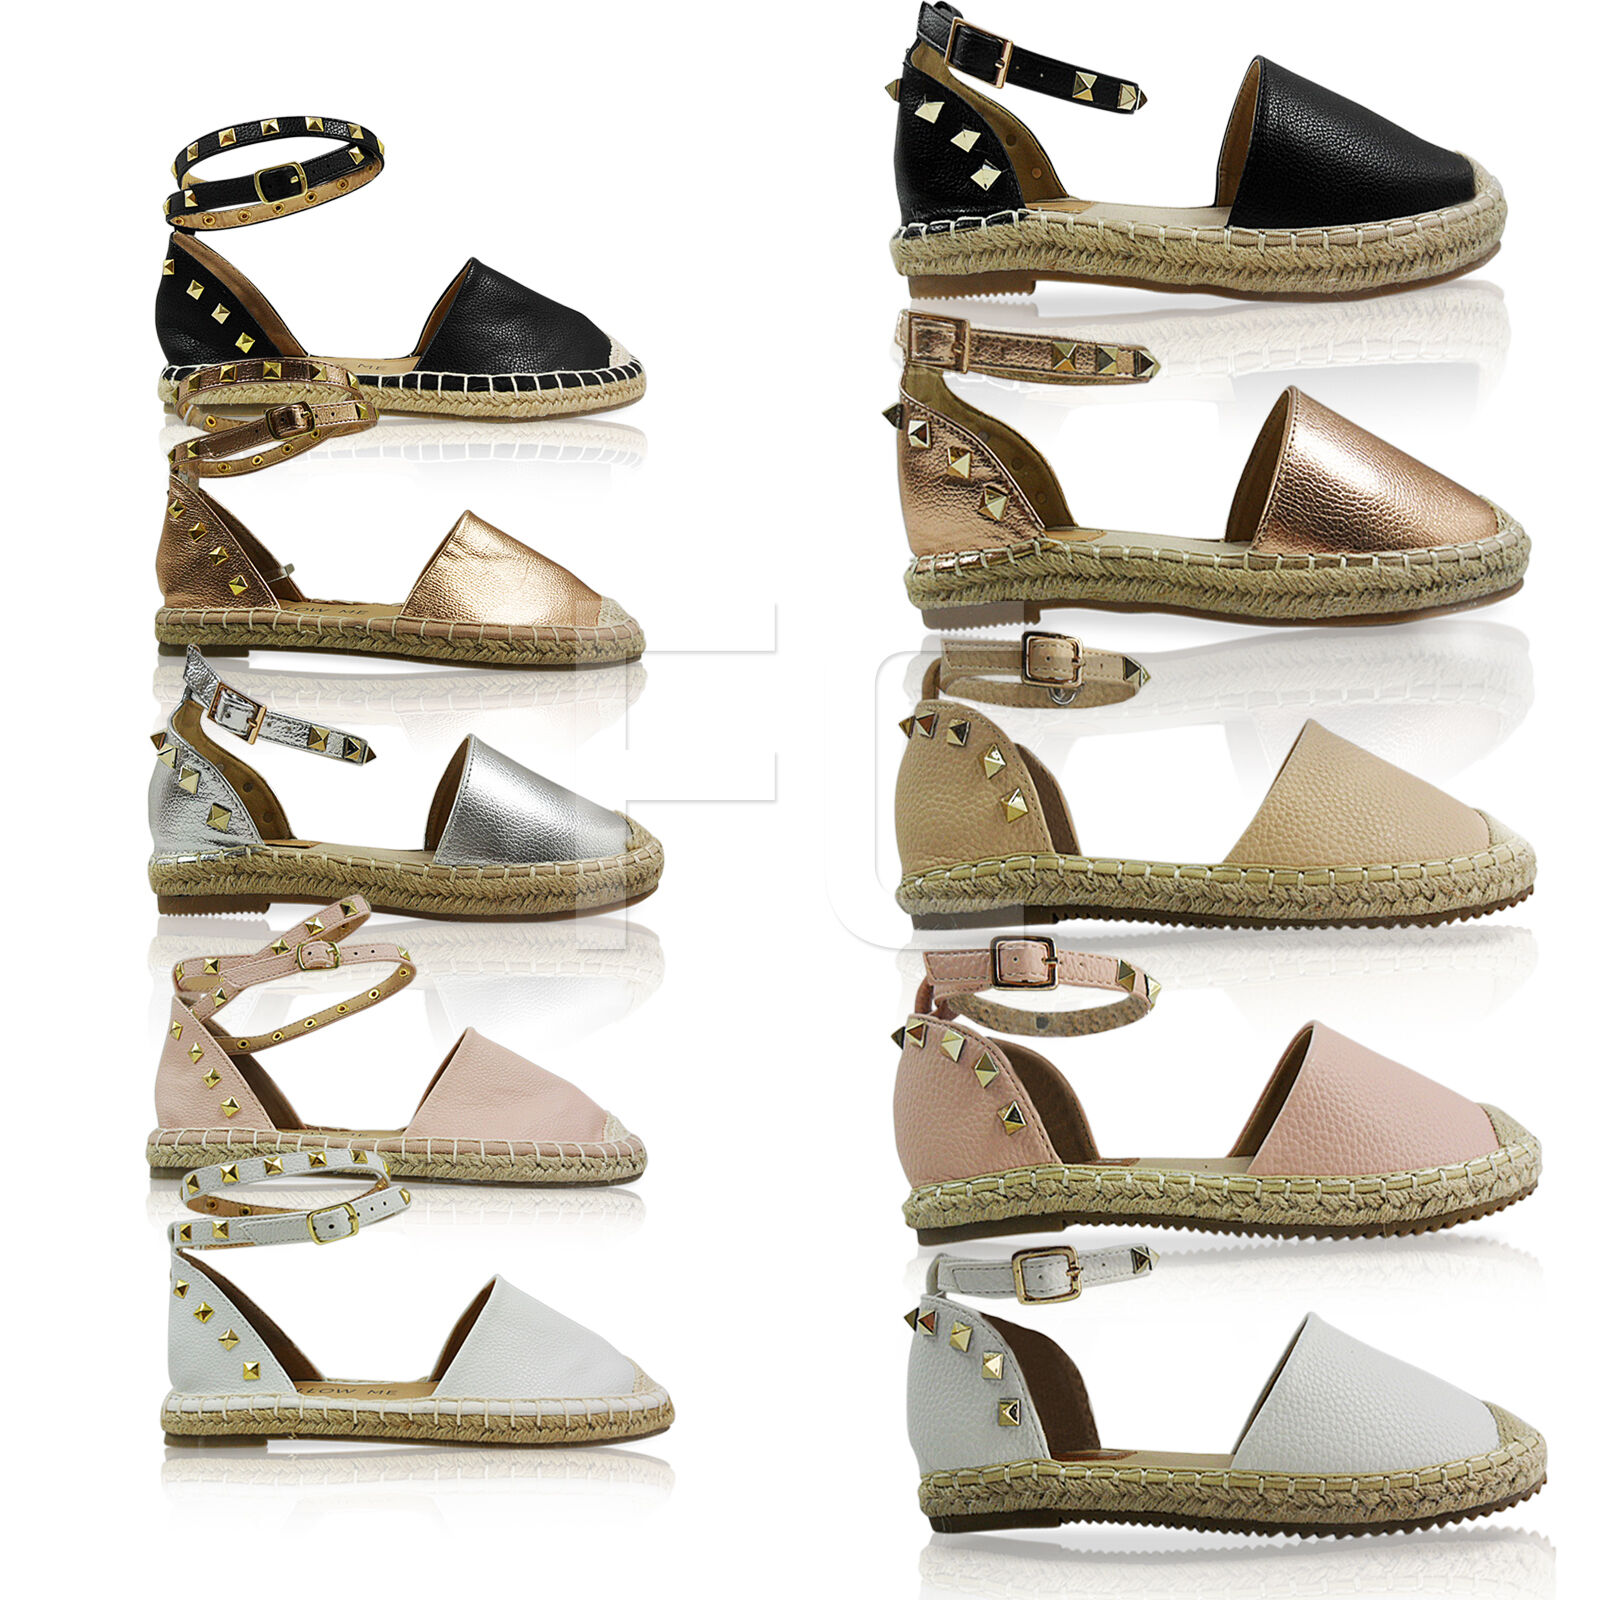 NEW WOMEN LADIES FLAT LOW SUMMER HEEL ESPADRILLES ANKLE STRAP SUMMER LOW SANDALS SHOES SIZE 4f97dd